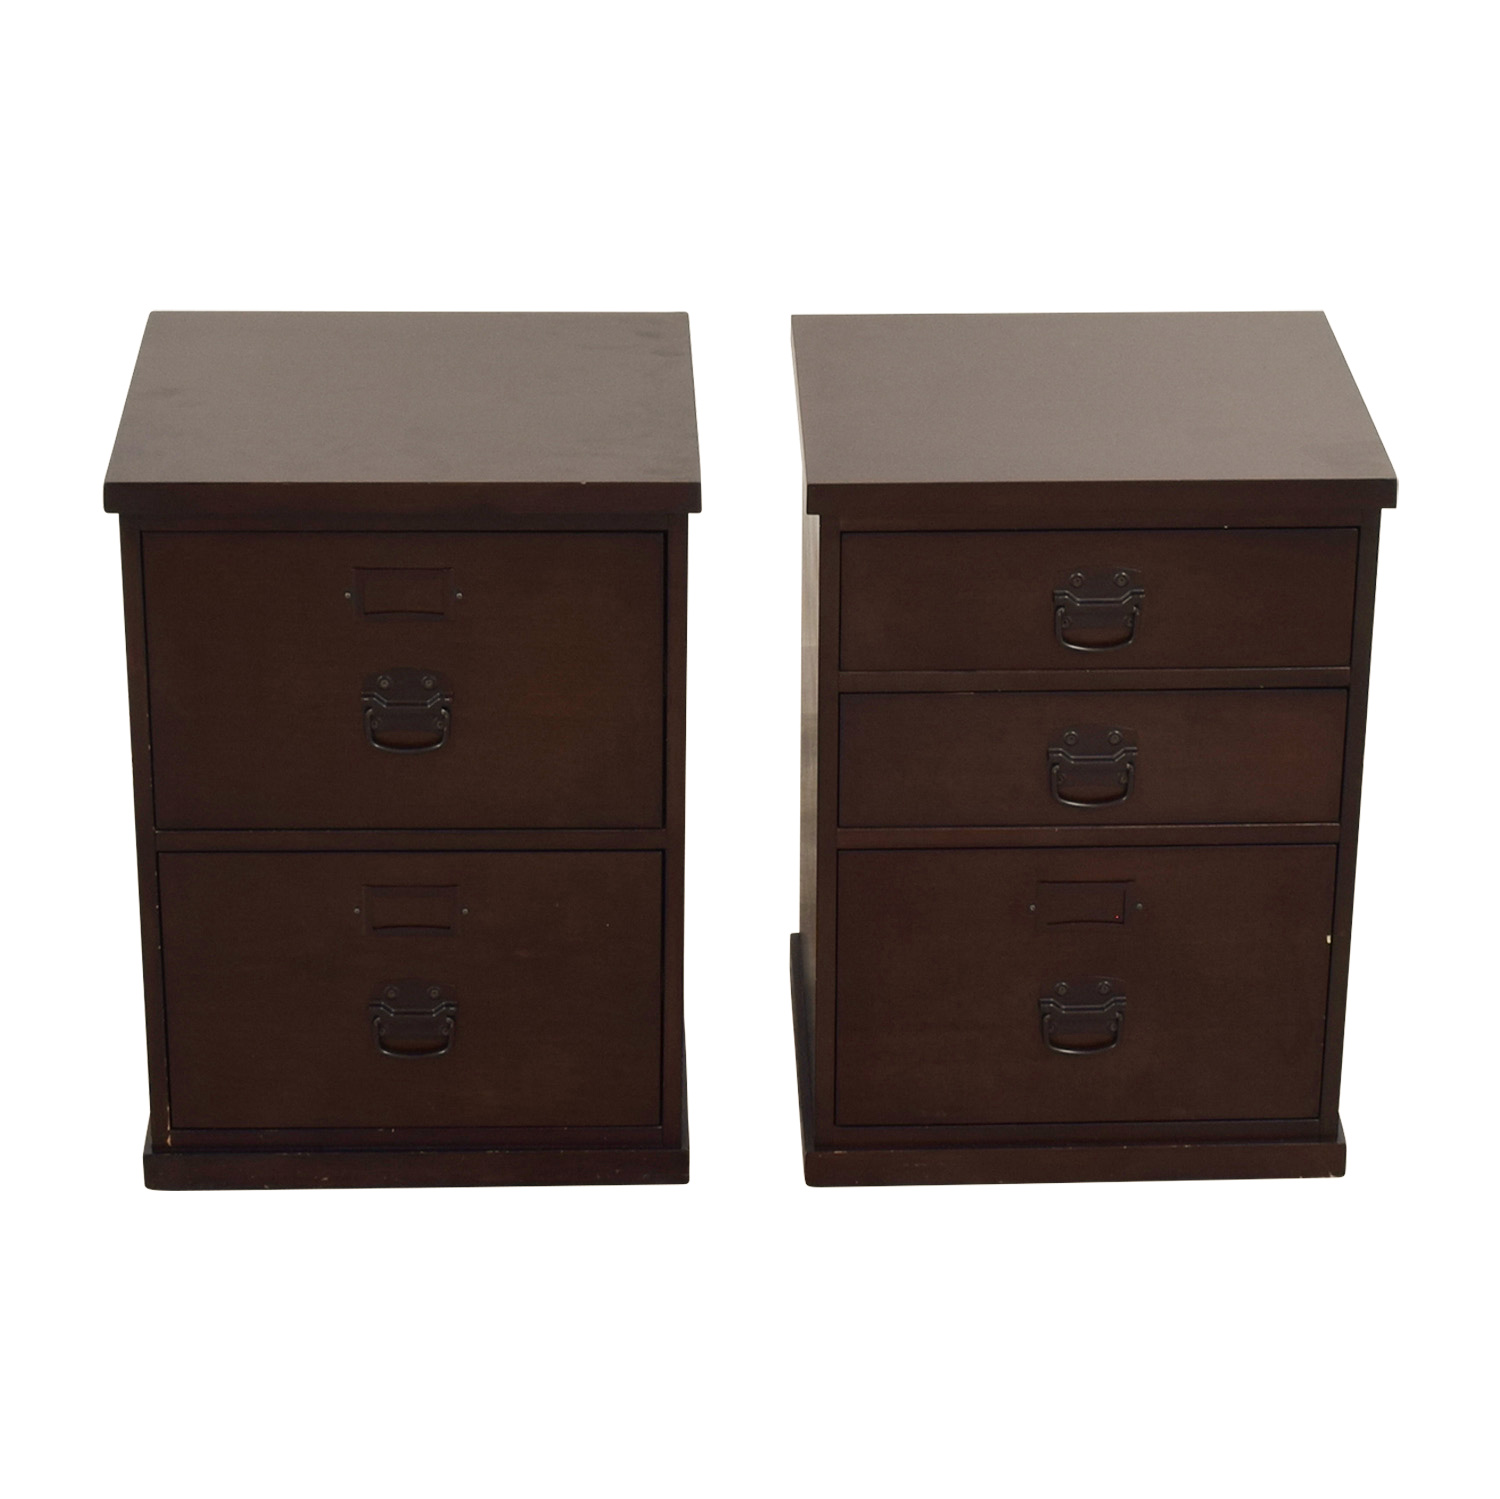 Pottery Barn Wood File Cabinets Coupon